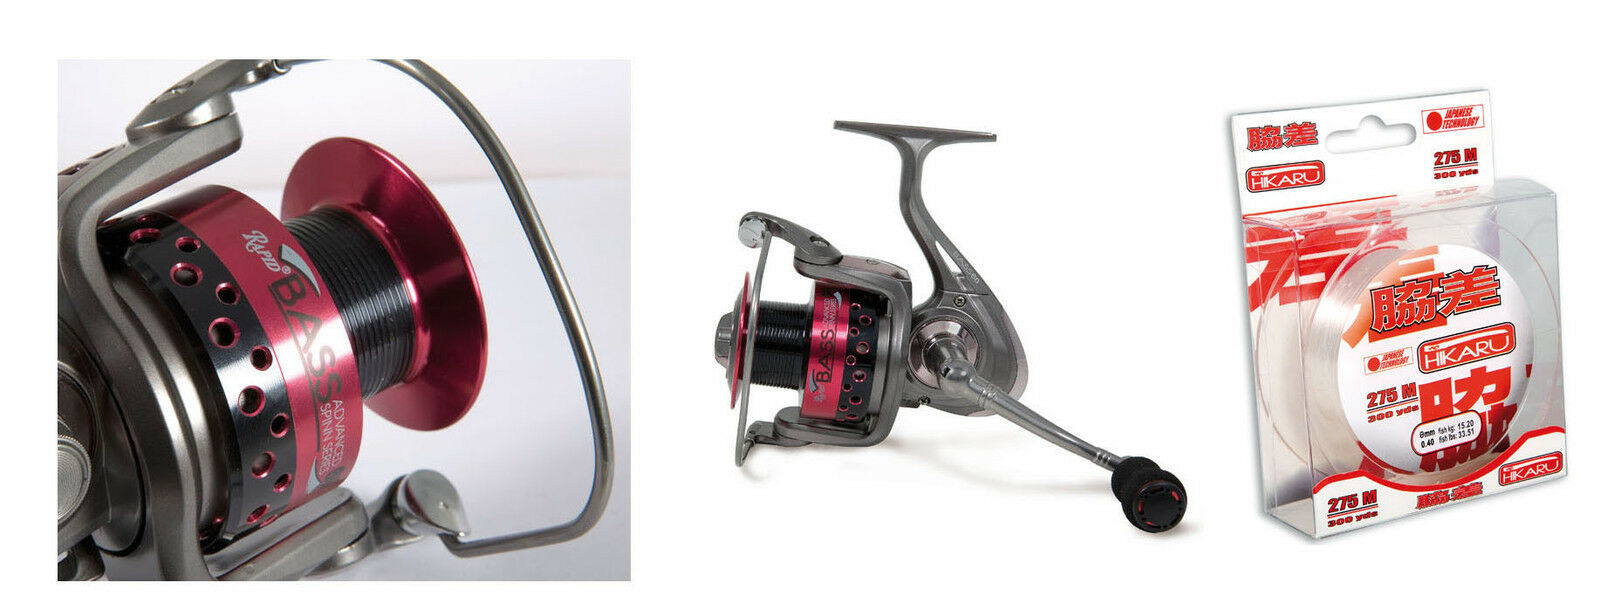 Lineaeffe Red Bass Reel 050 11BB & Spare Spool spin Lure + 275mt Spool of line